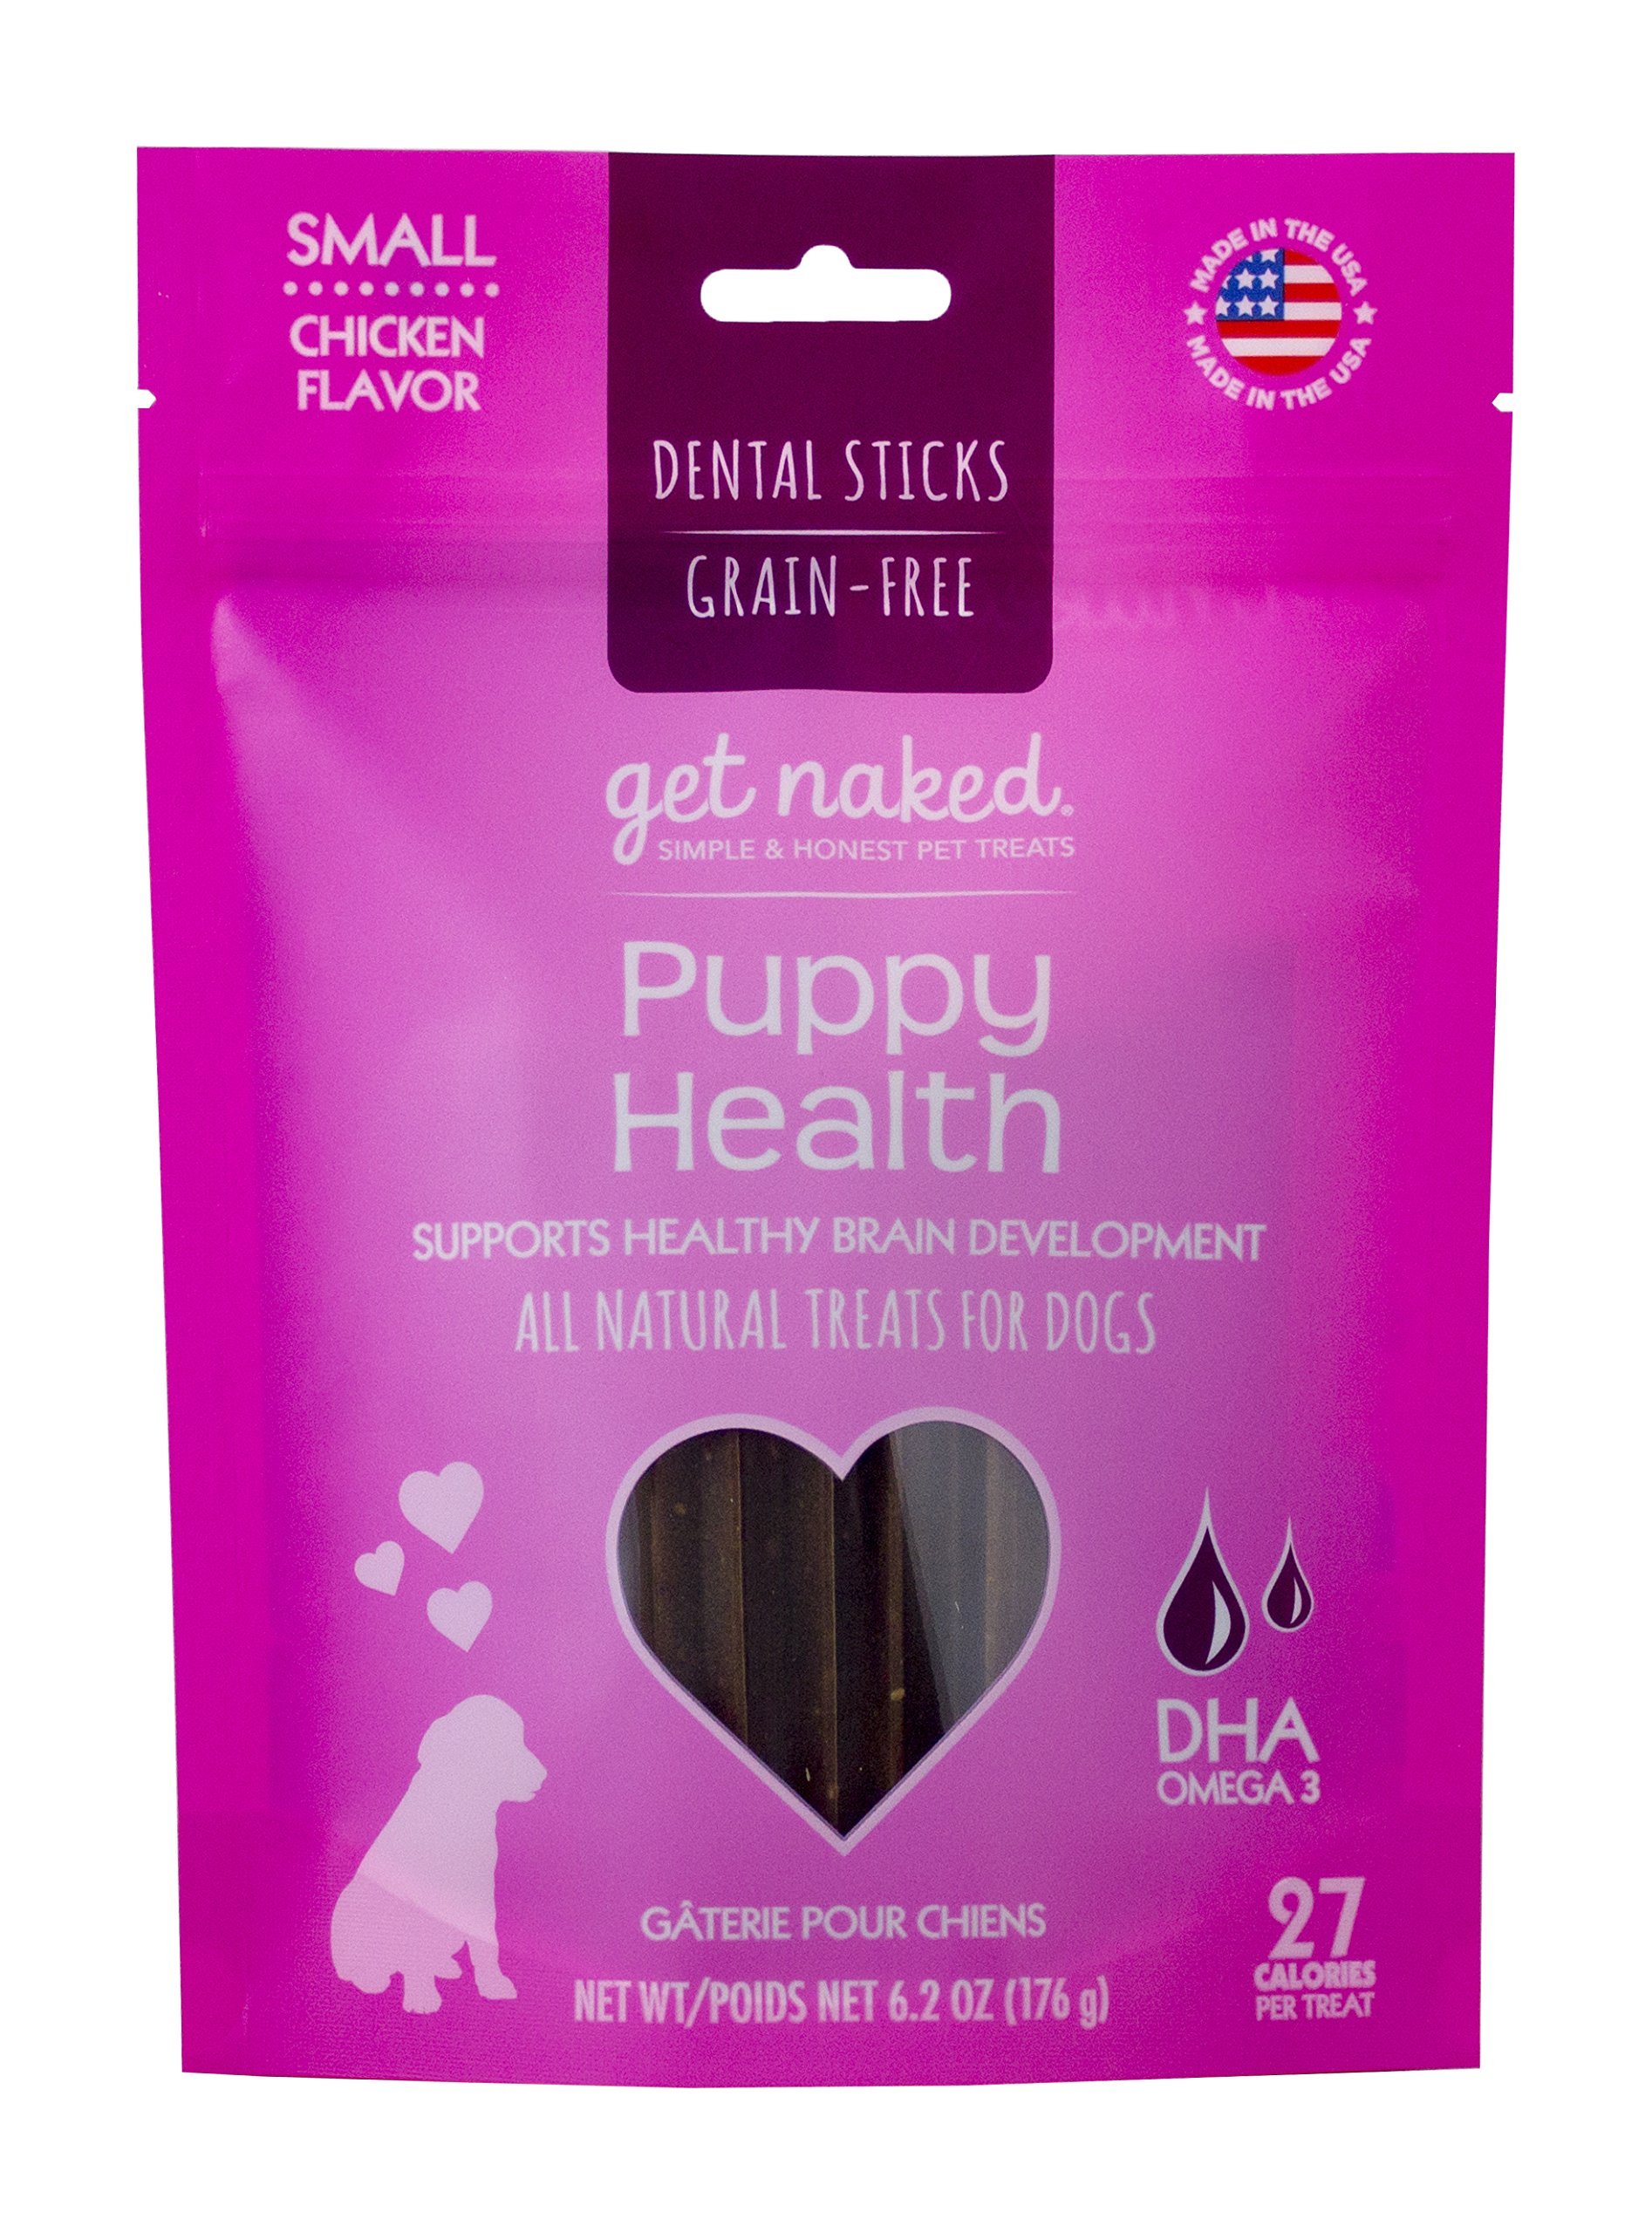 Get Naked Grain Free Puppy Health Dental Chew Sticks Small 6.2 oz